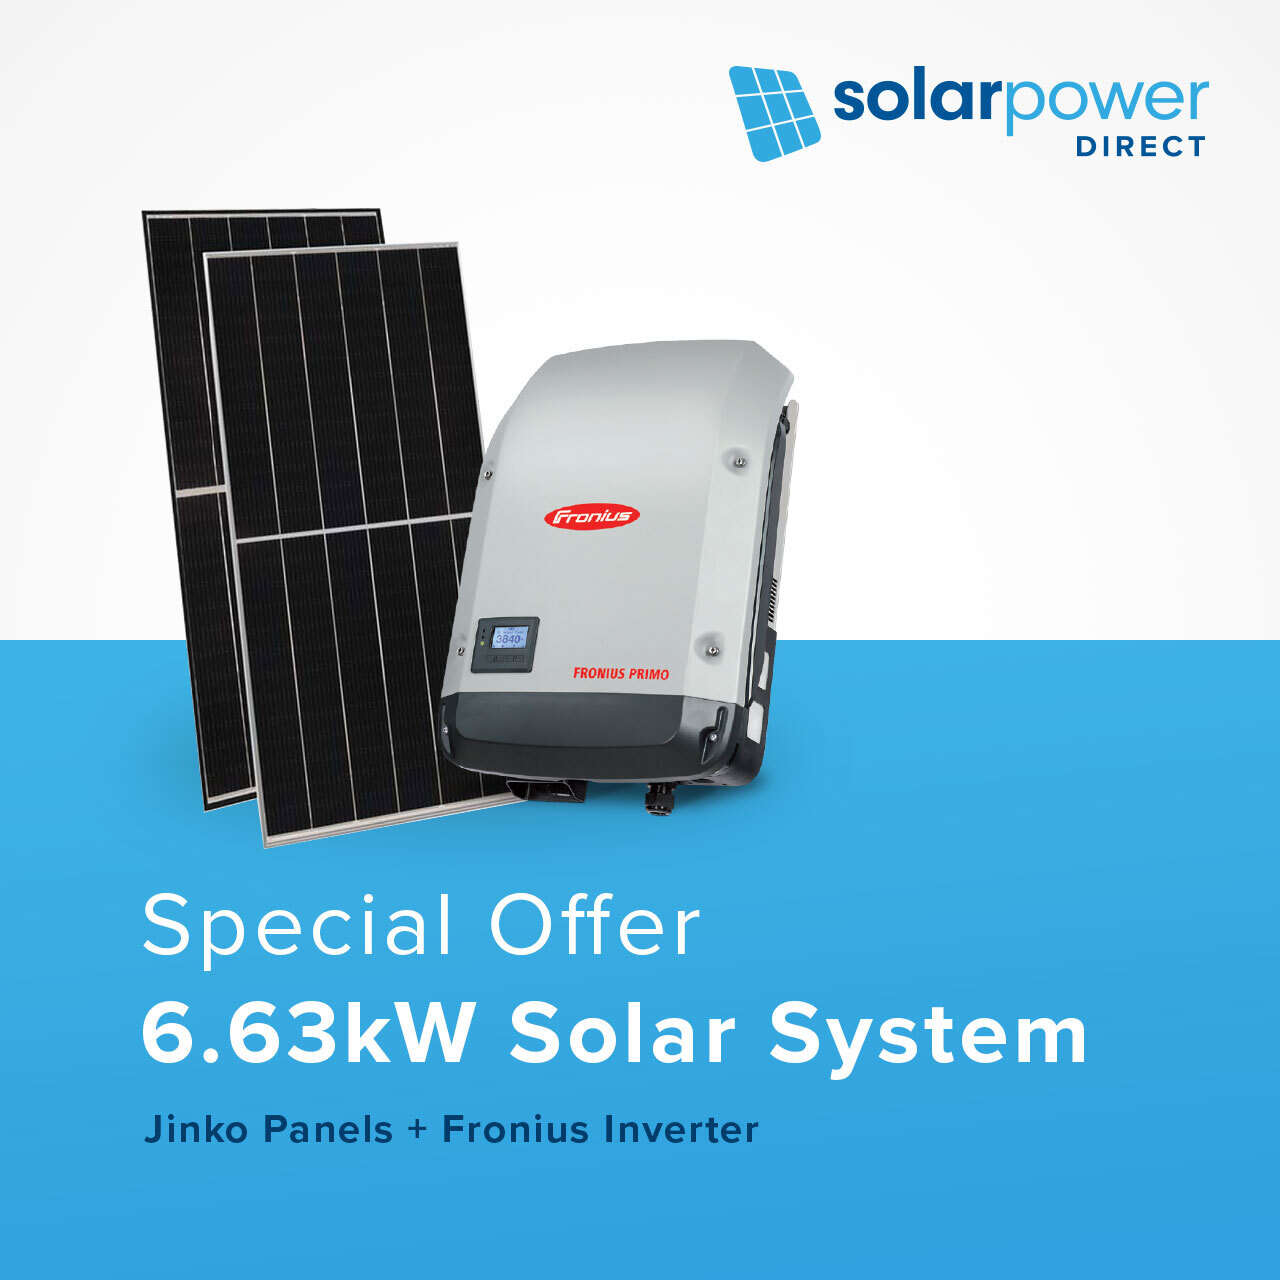 6.63kW Solar System for $4,690